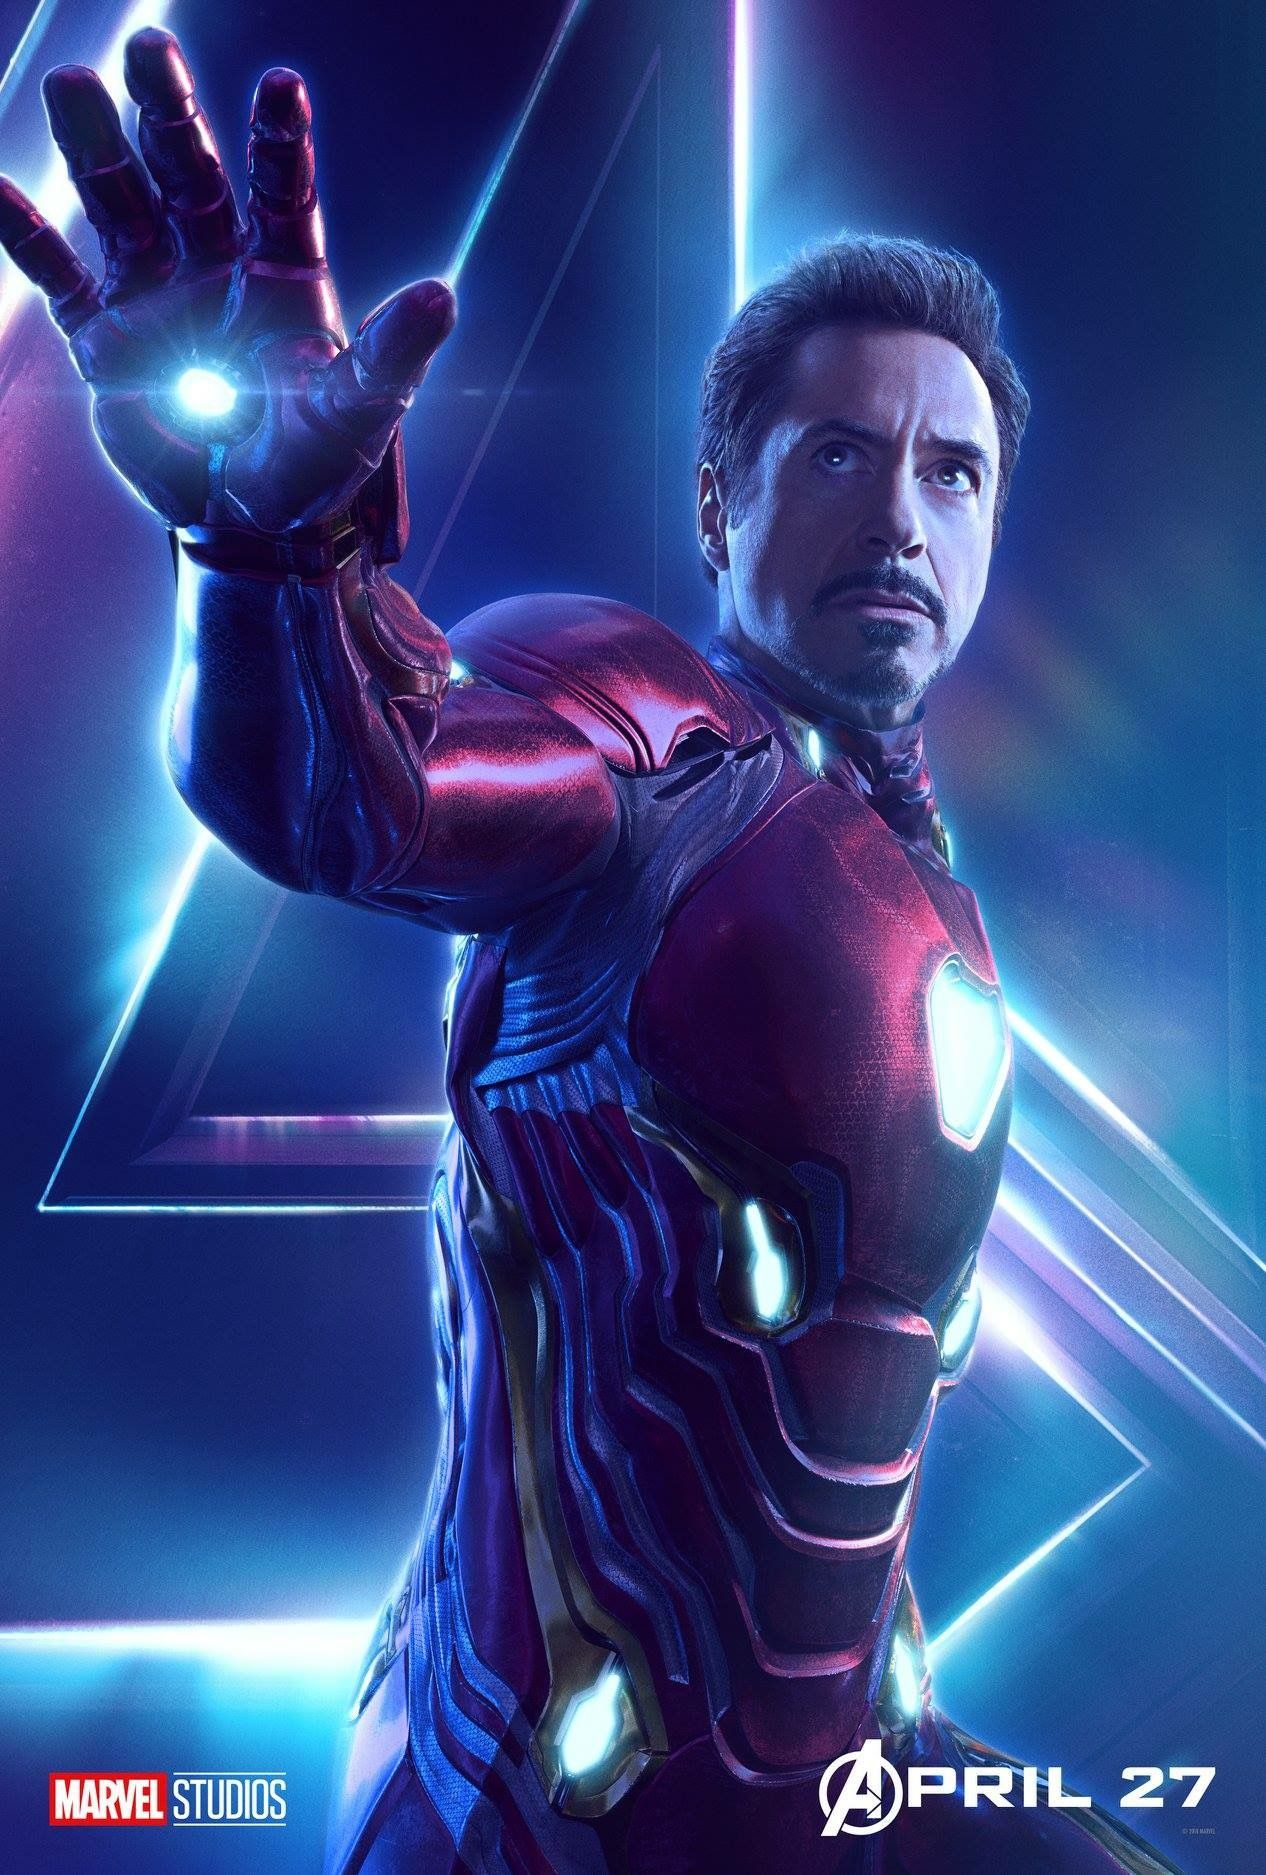 New Avengers Infinity War Poster Featuring Iron Man With